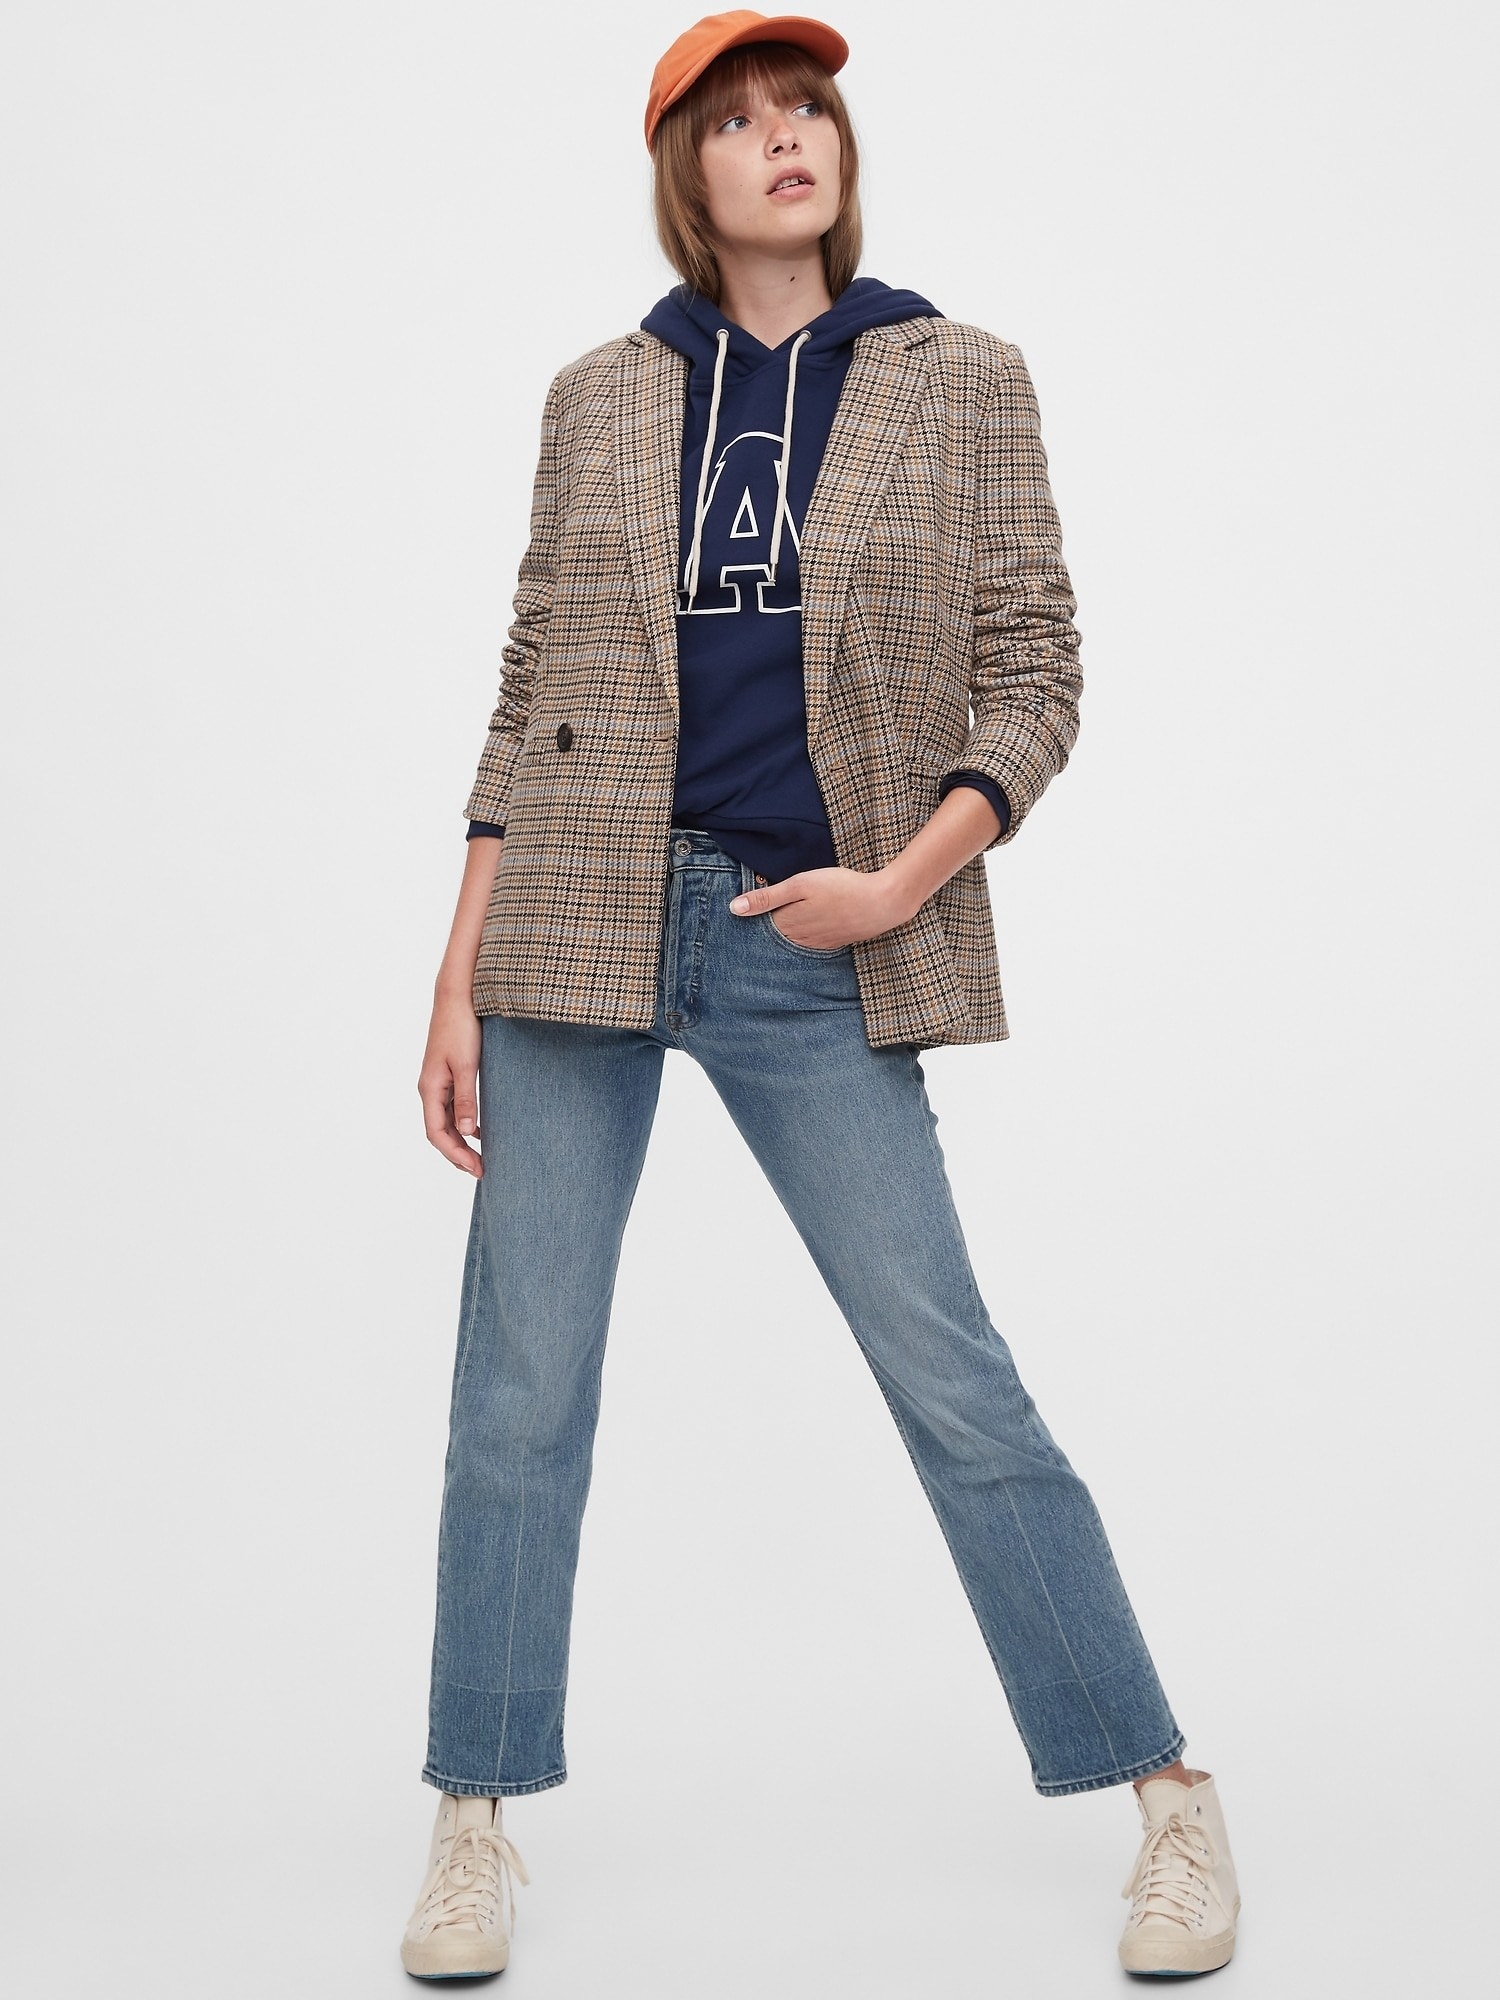 model wearing double-breasted blazer in brown plaid with jeans and a hoodie